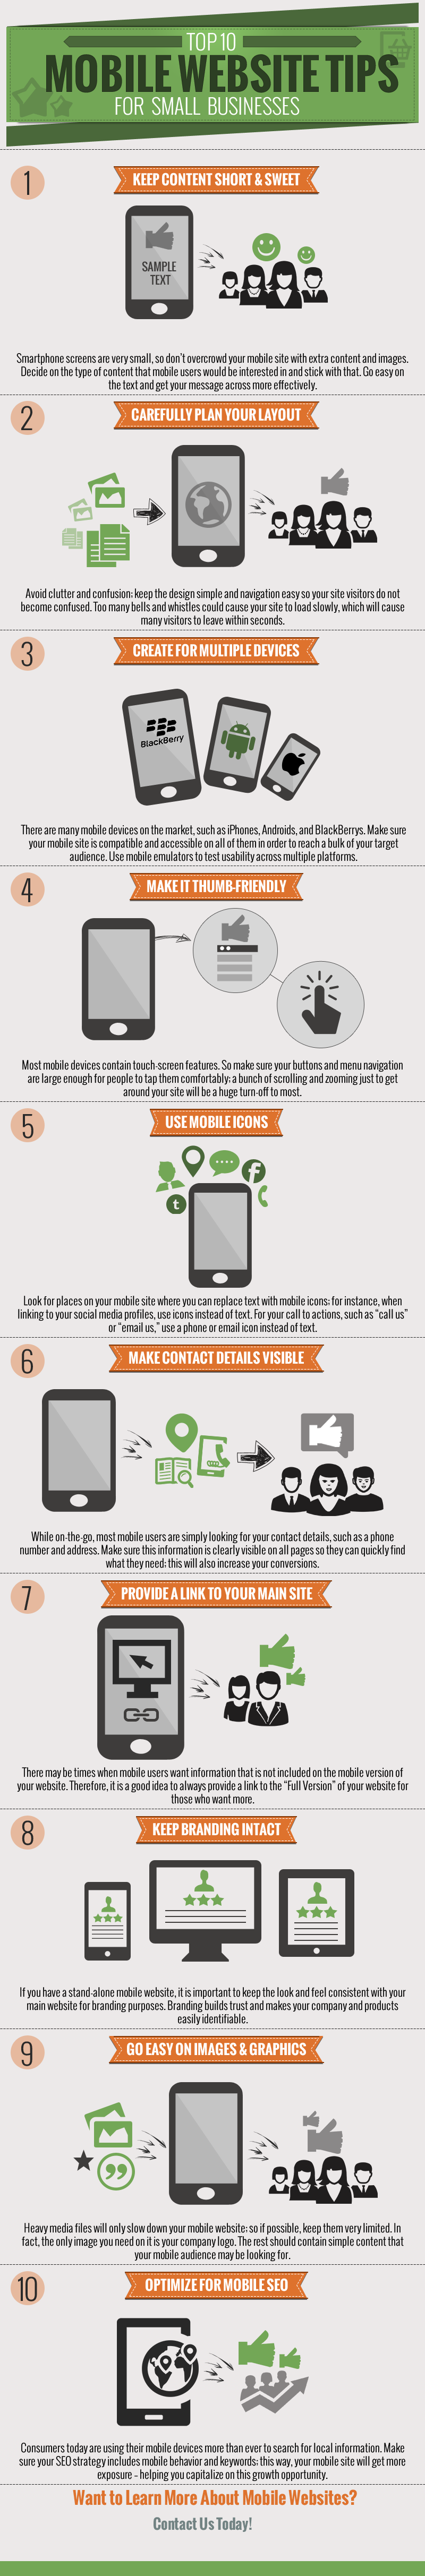 Mobile Website Tips for Small Businesses